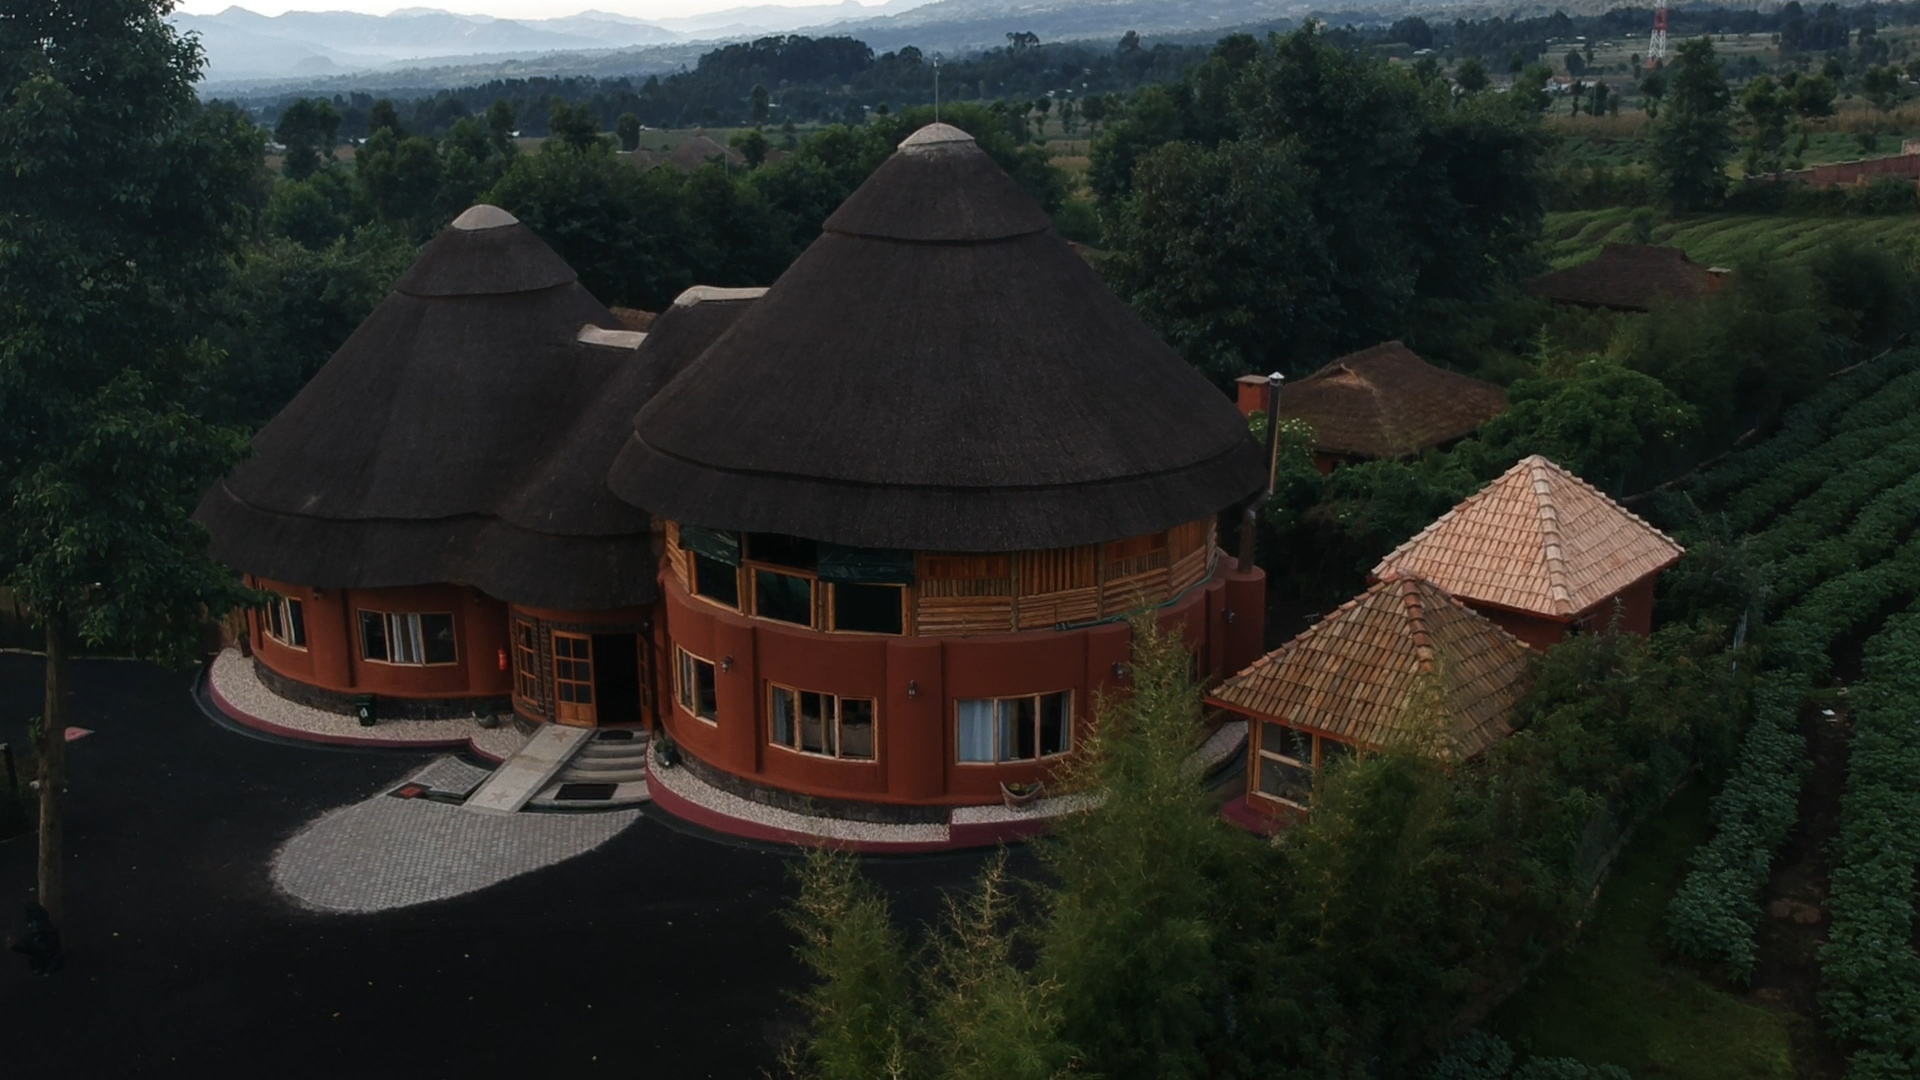 Photo of the Lodge Land scape (1)